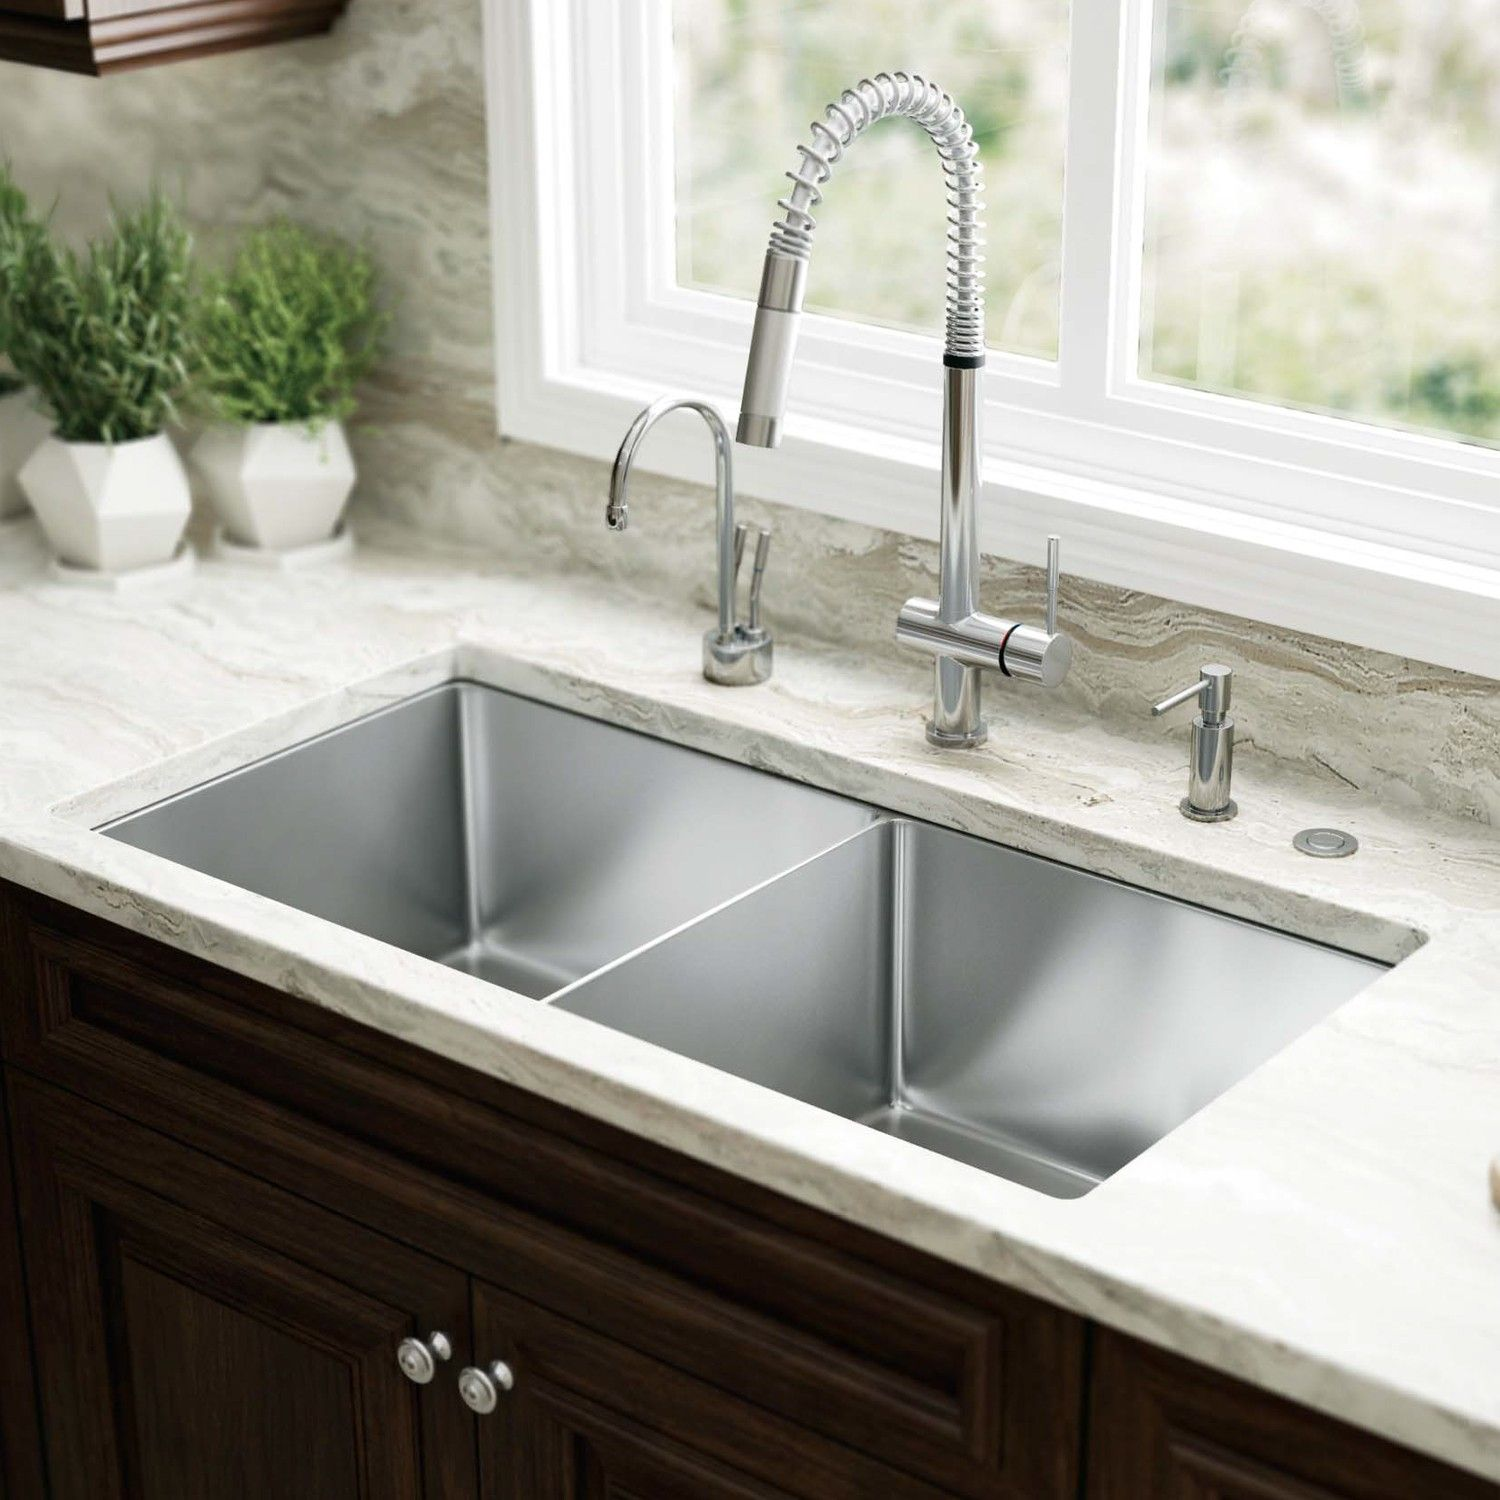 With simple form and sleek aesthetics the Professional Deep Single Bowl Undermount Kitchen Sink will & Pin by Tin Yeu Phuong on kitchen ideas in 2019 | Kitchen sink ...